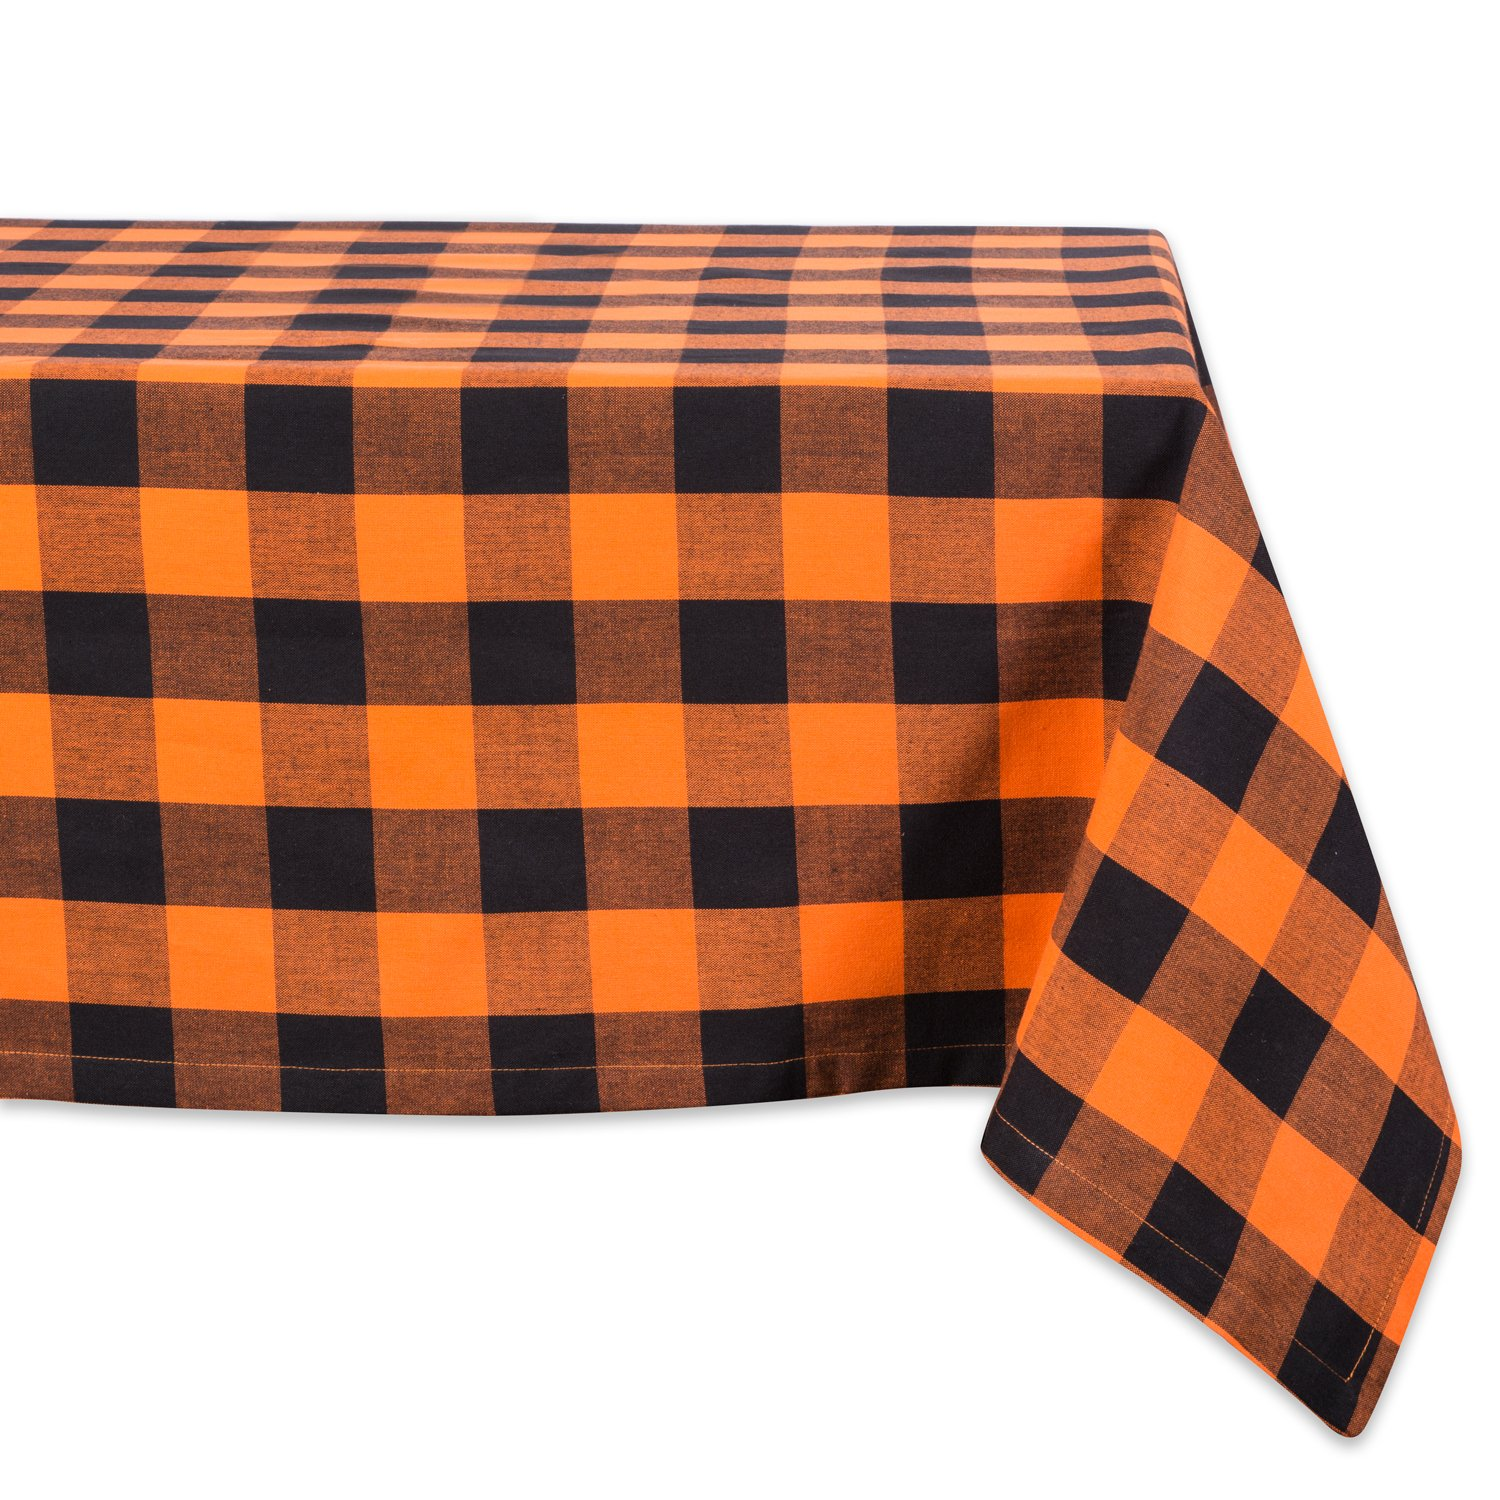 """DII Cotton Buffalo Check Plaid Rectangle Tablecloth for Family Dinners or Gatherings, Indoor or Outdoor Parties, & Everyday Use (60x120"""",Seats 10-12 People), Orange & Black"""